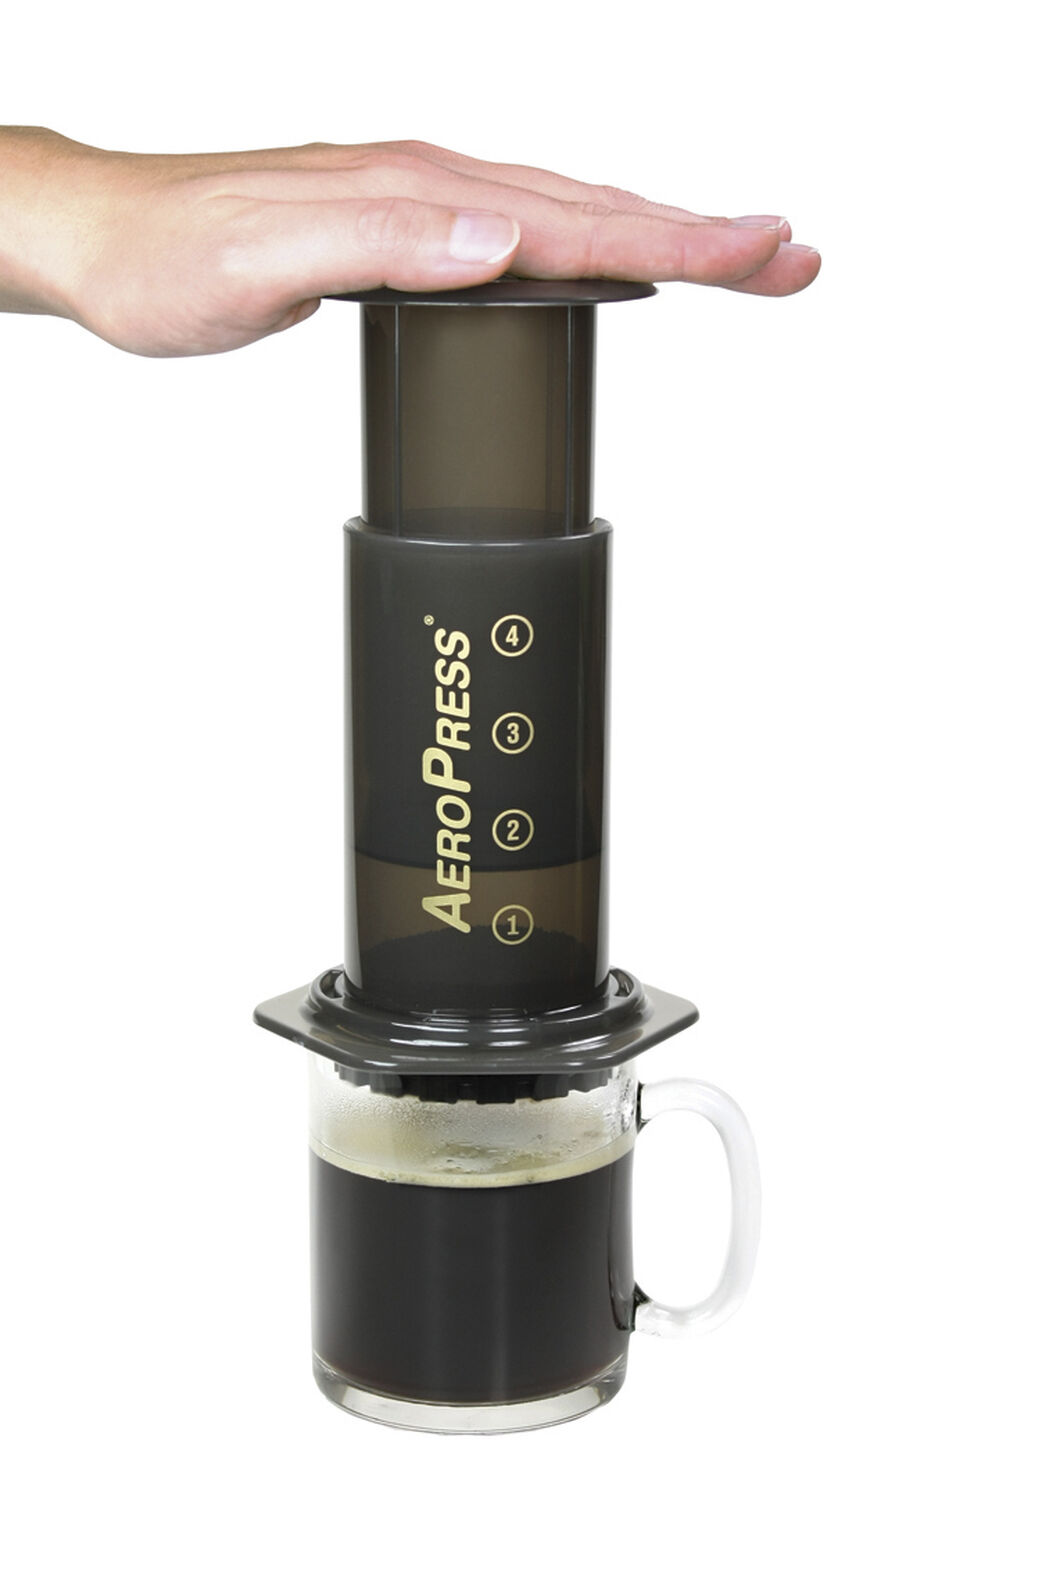 AeroPress Coffee Maker, None, hi-res